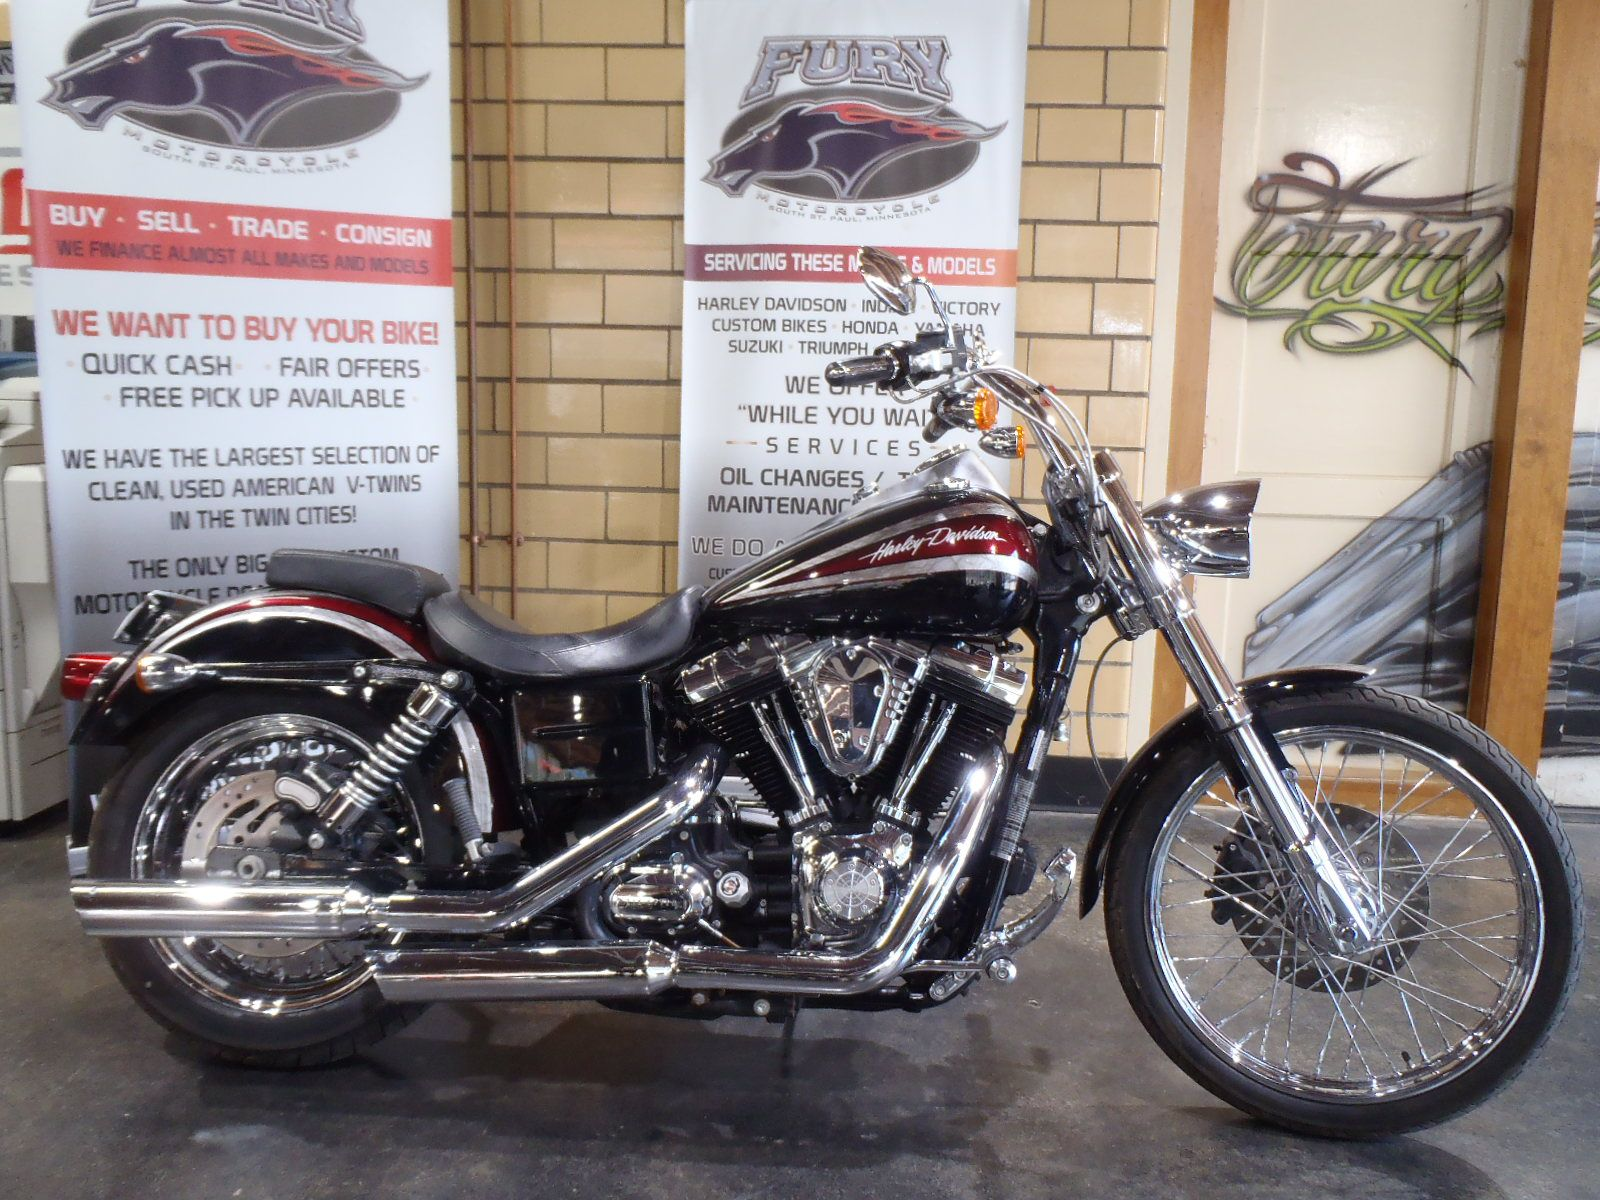 2009 Harley-Davidson Dyna Super Glide Custom in South Saint Paul, Minnesota - Photo 1